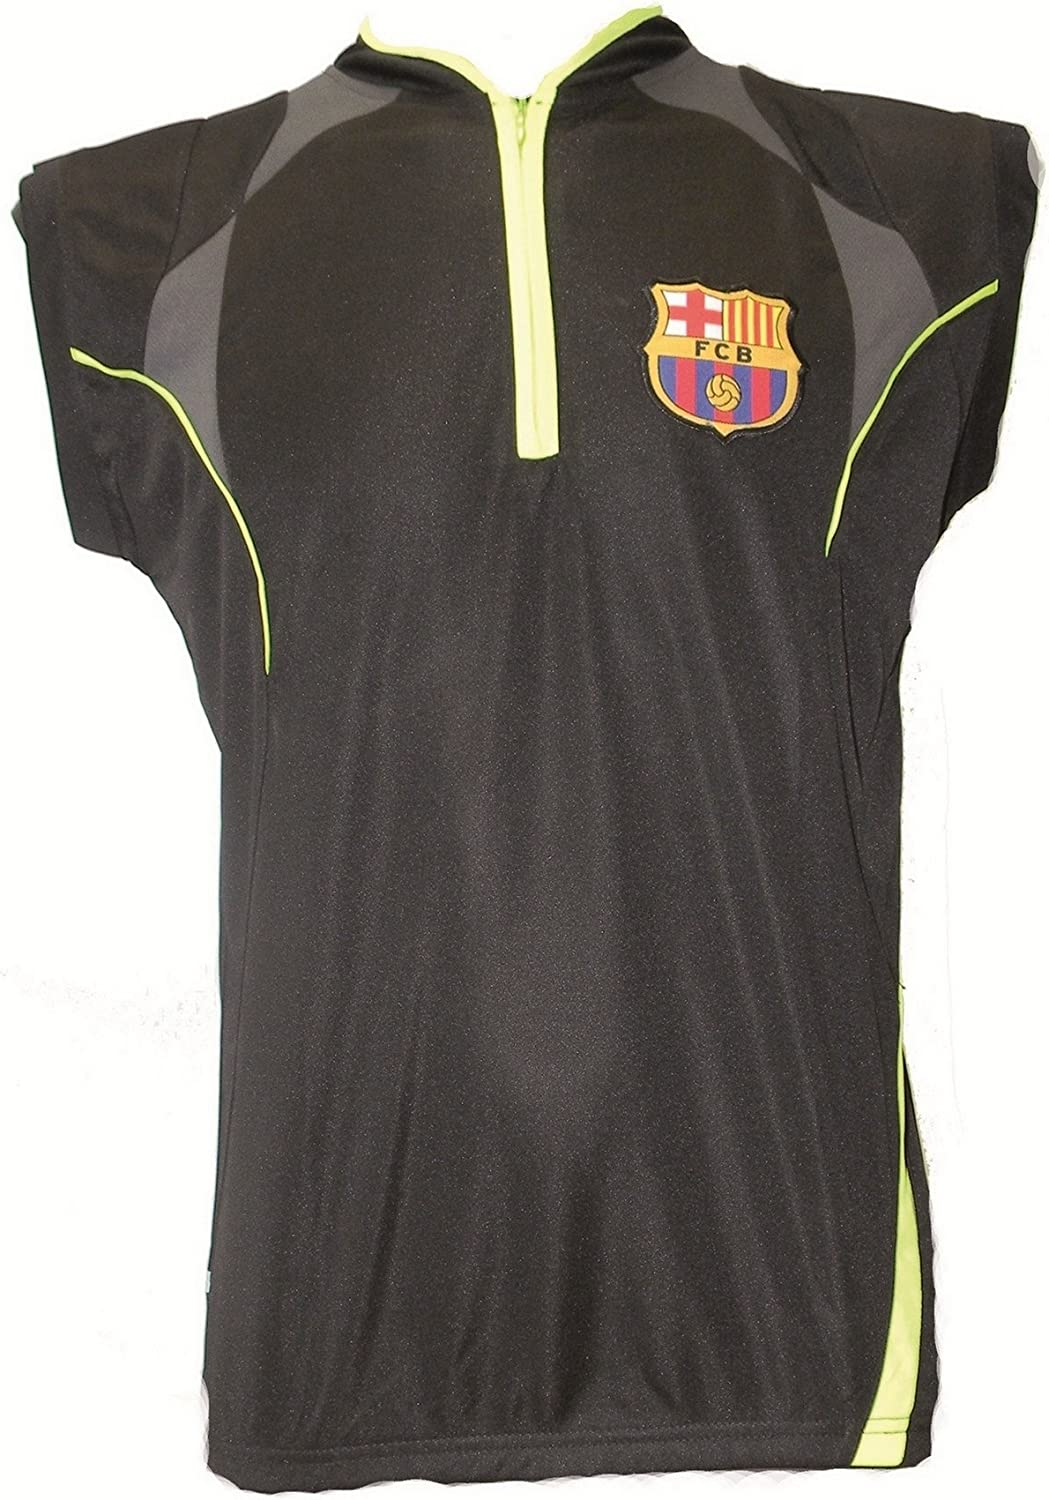 FCB Spinning - Maillot Unisex, Color Negro, Talla L: Amazon.es ...